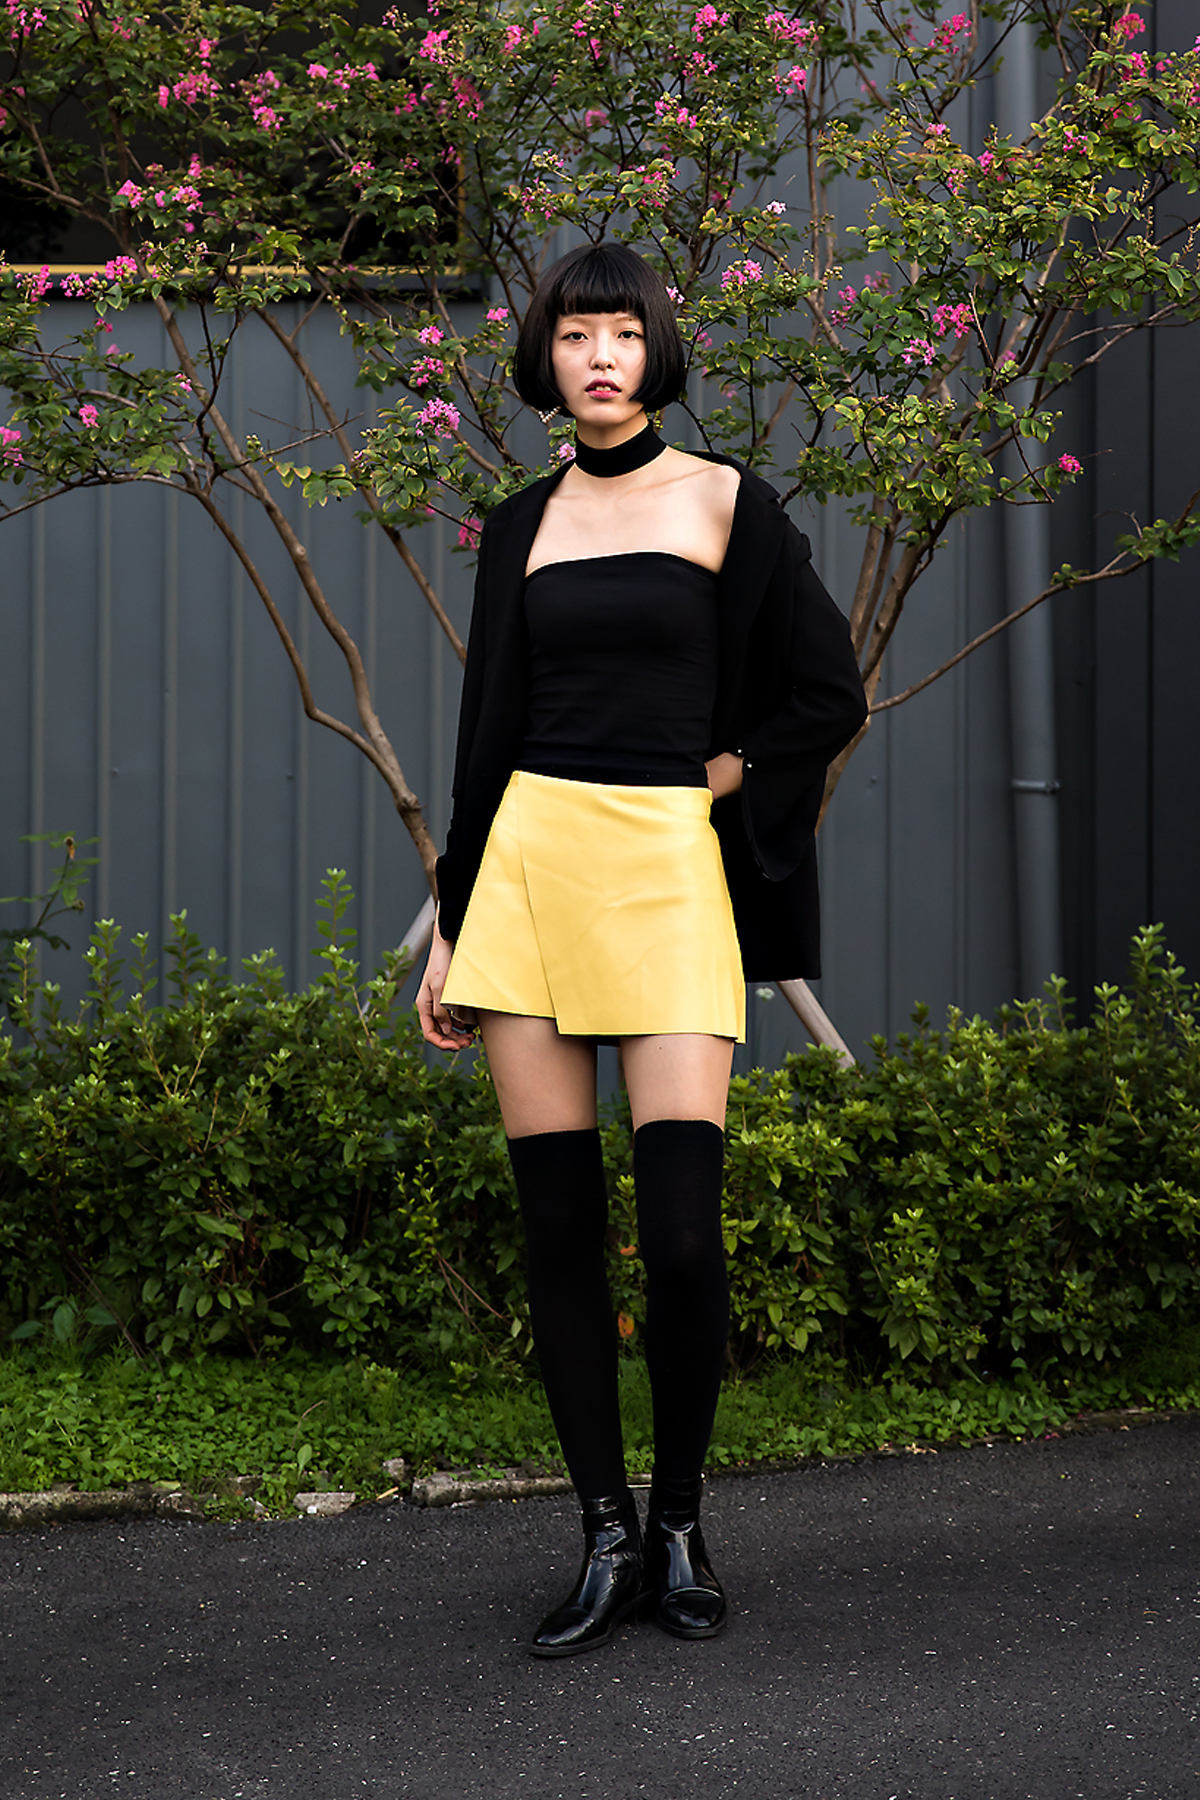 Hwangbo Ra, Street Fashion 2017 in Seoul.jpg